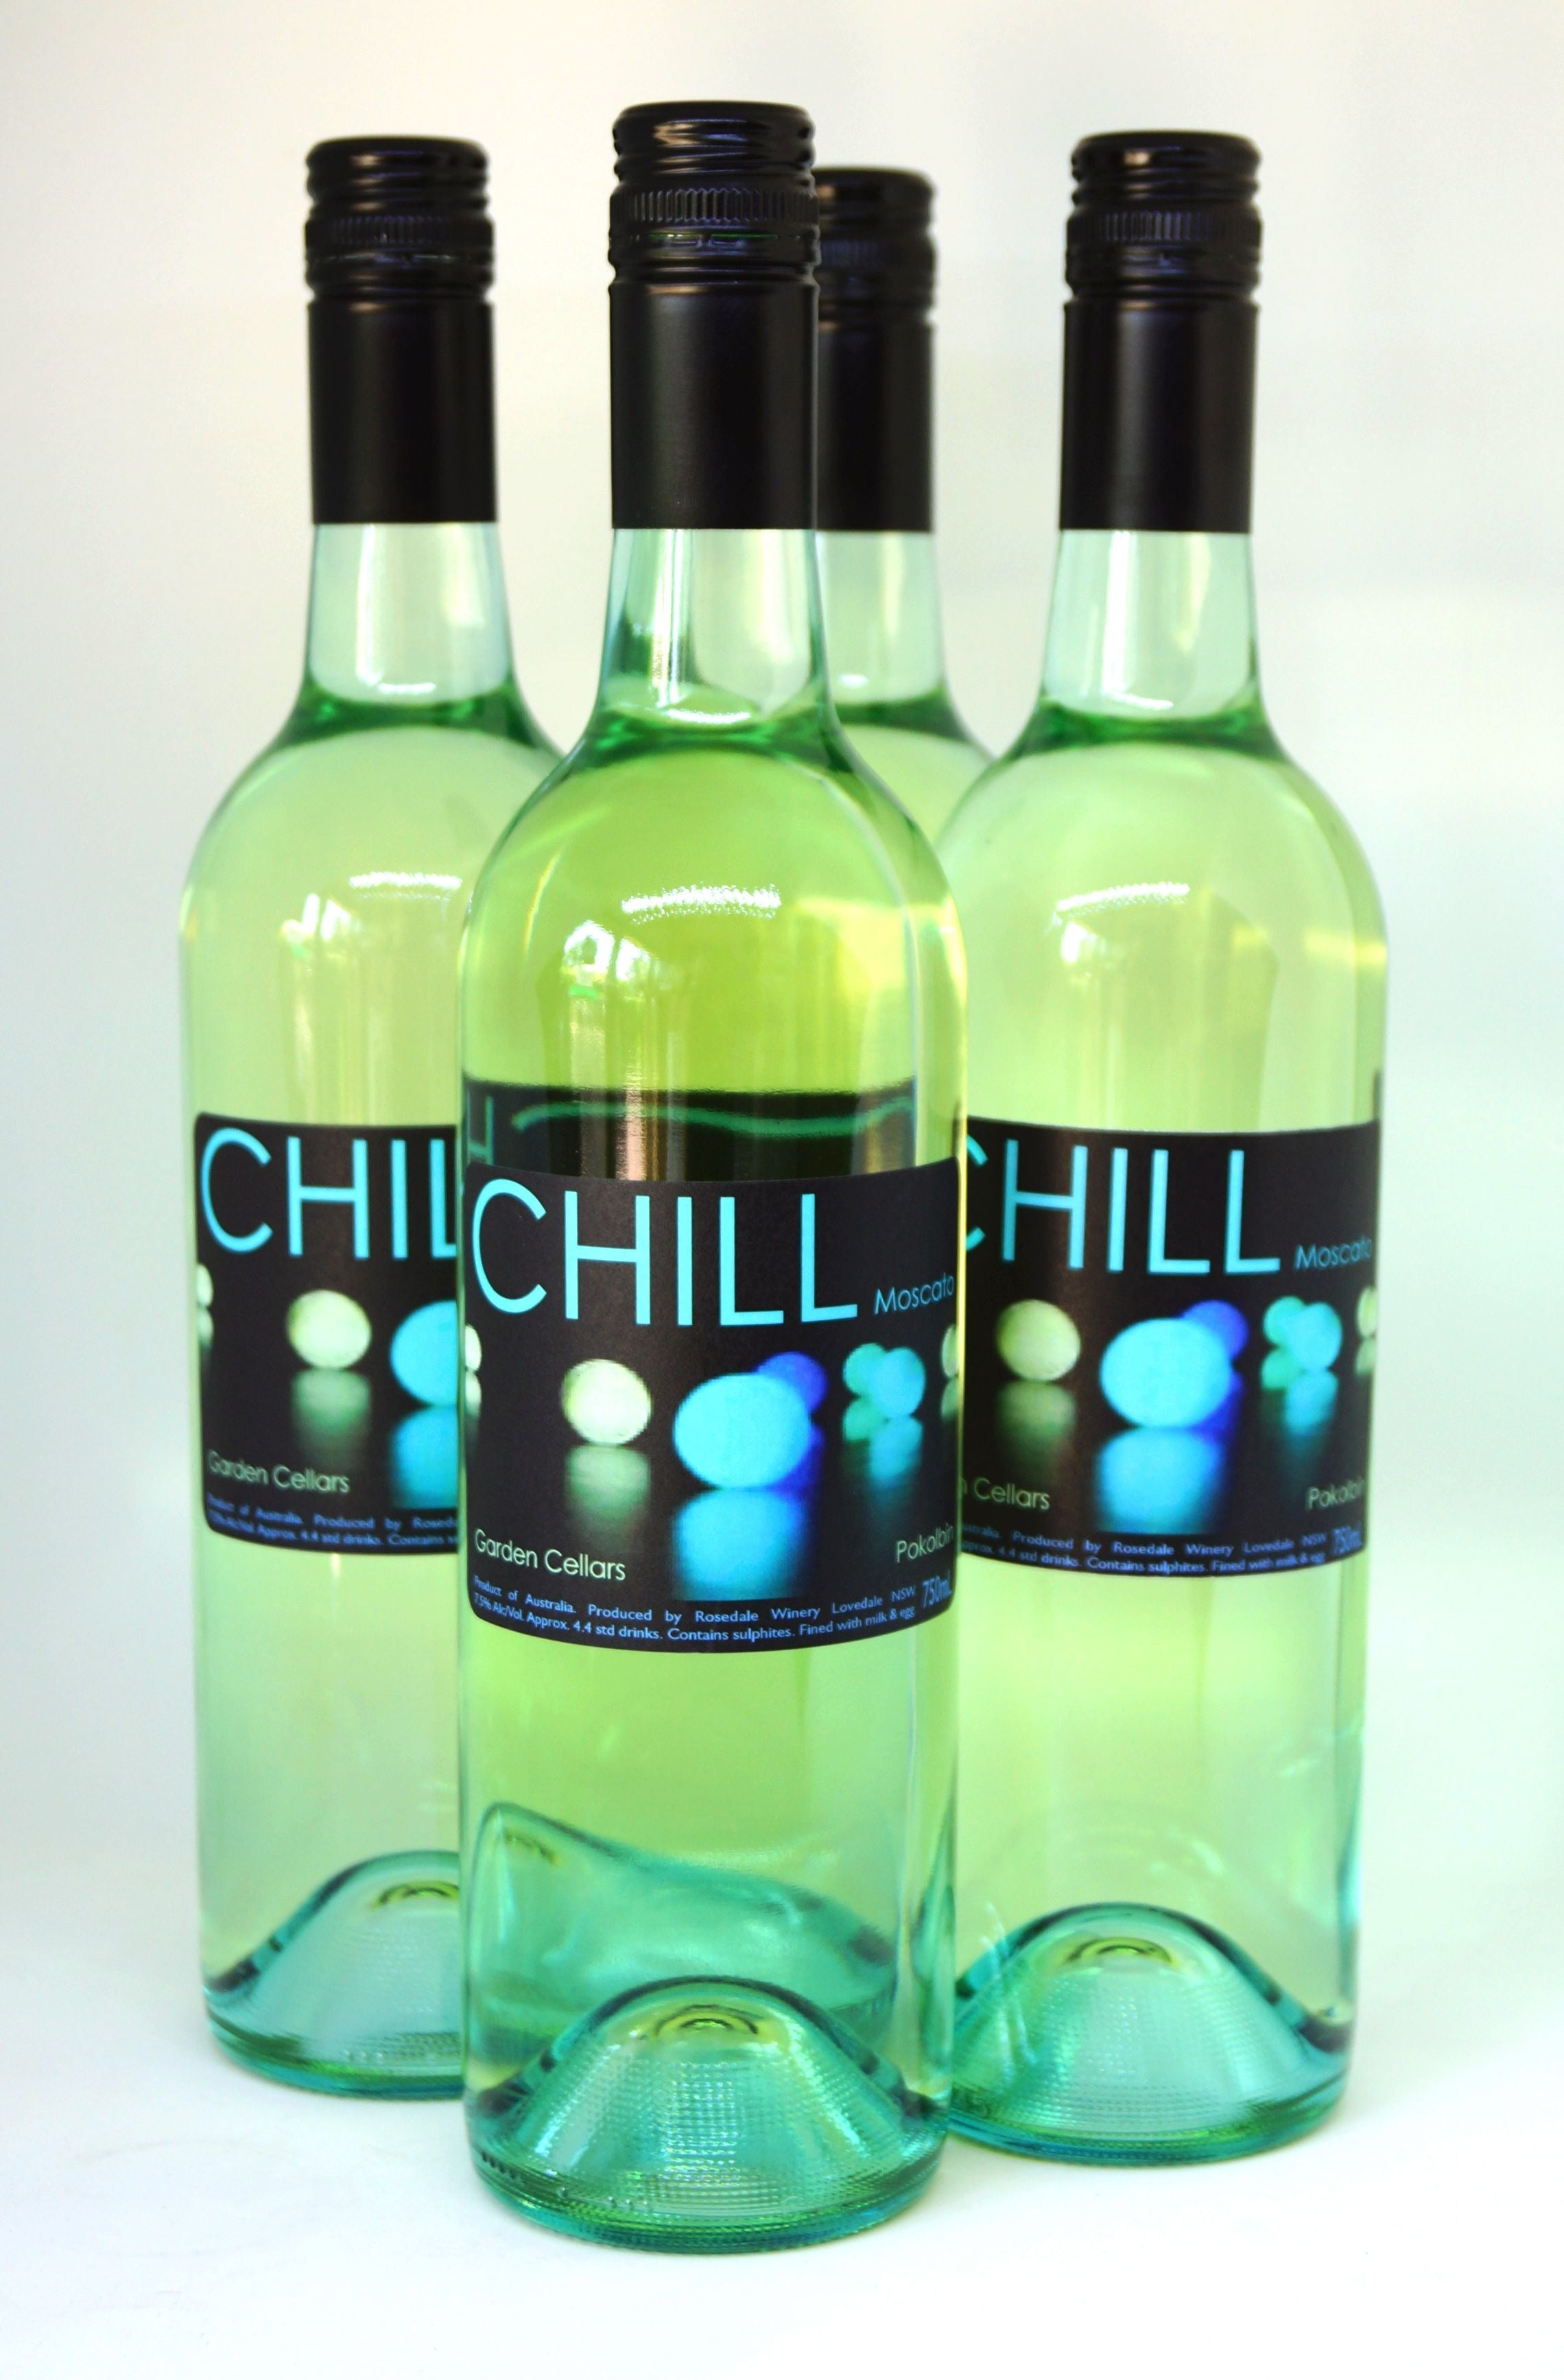 Chill Moscato 12 Bottle Case Special